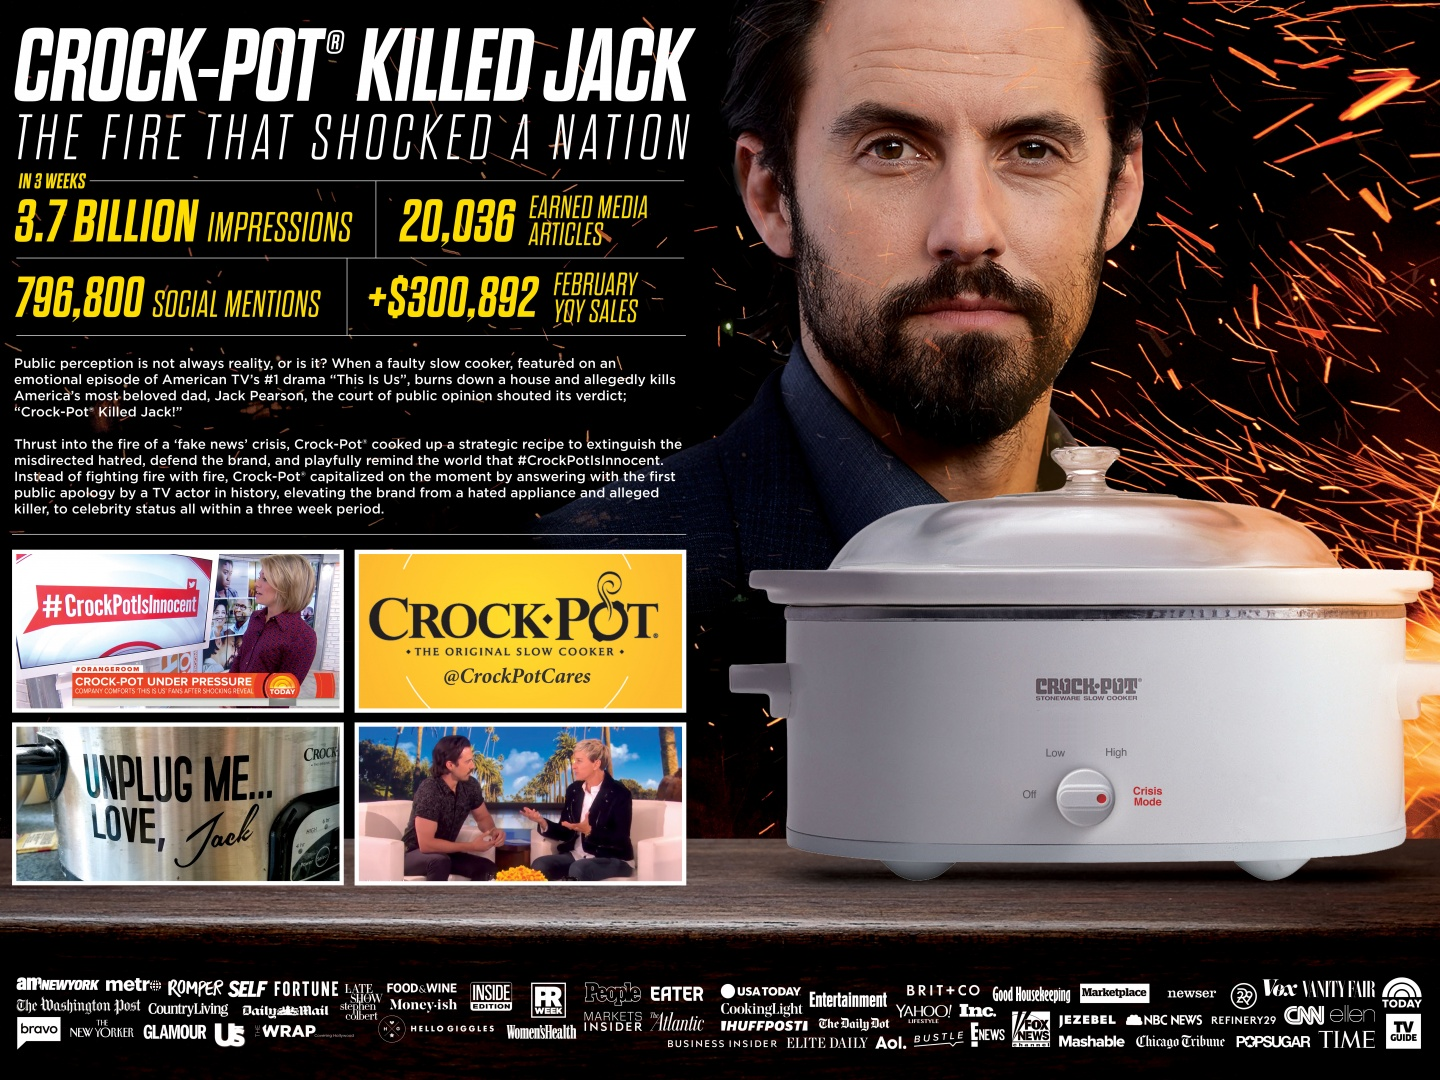 Crock-Pot Killed Jack Thumbnail